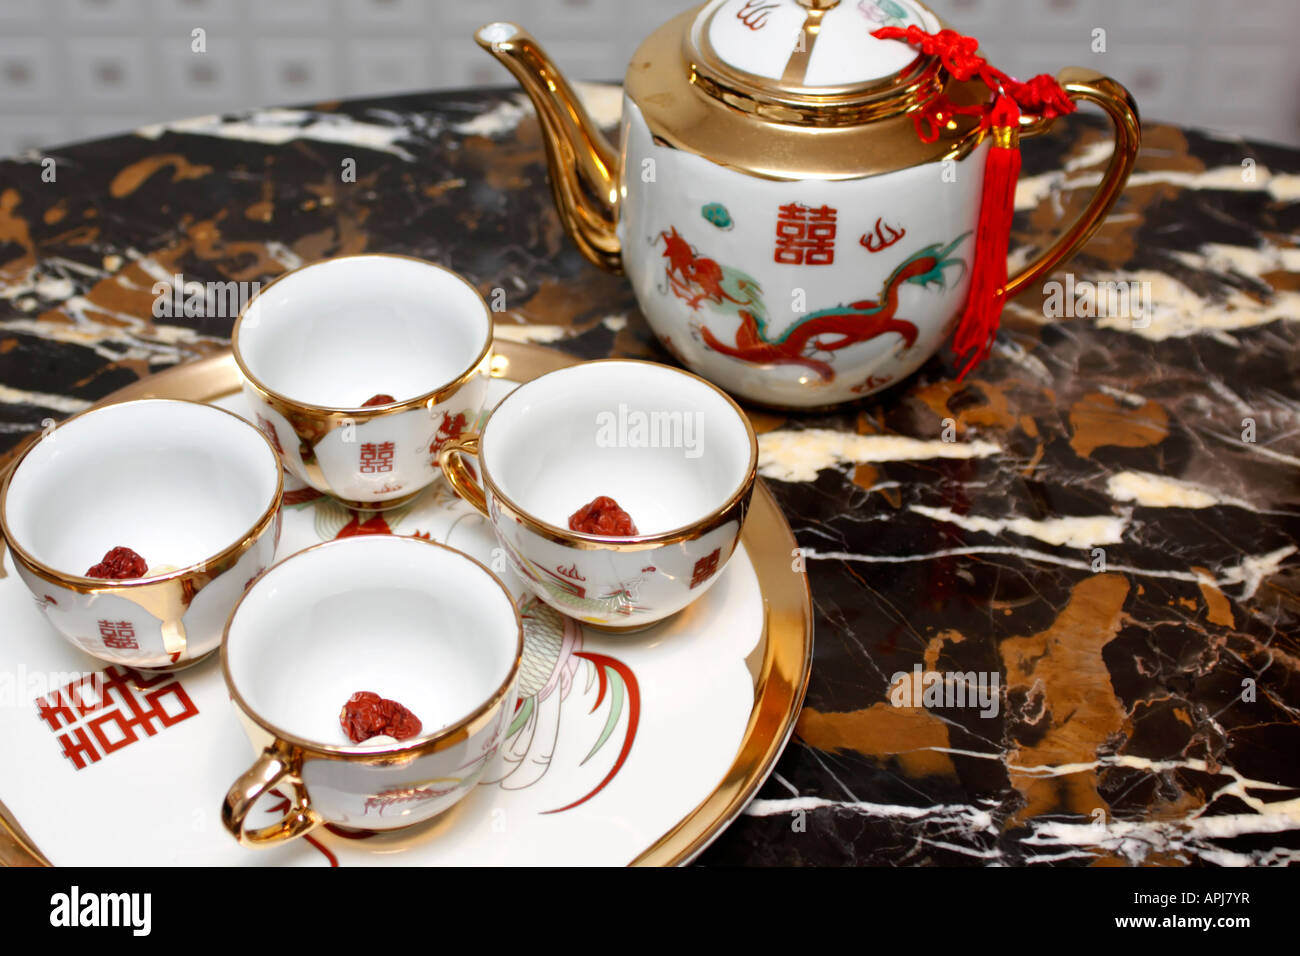 Double Happiness Tea Set For Serving At Chinese Wedding